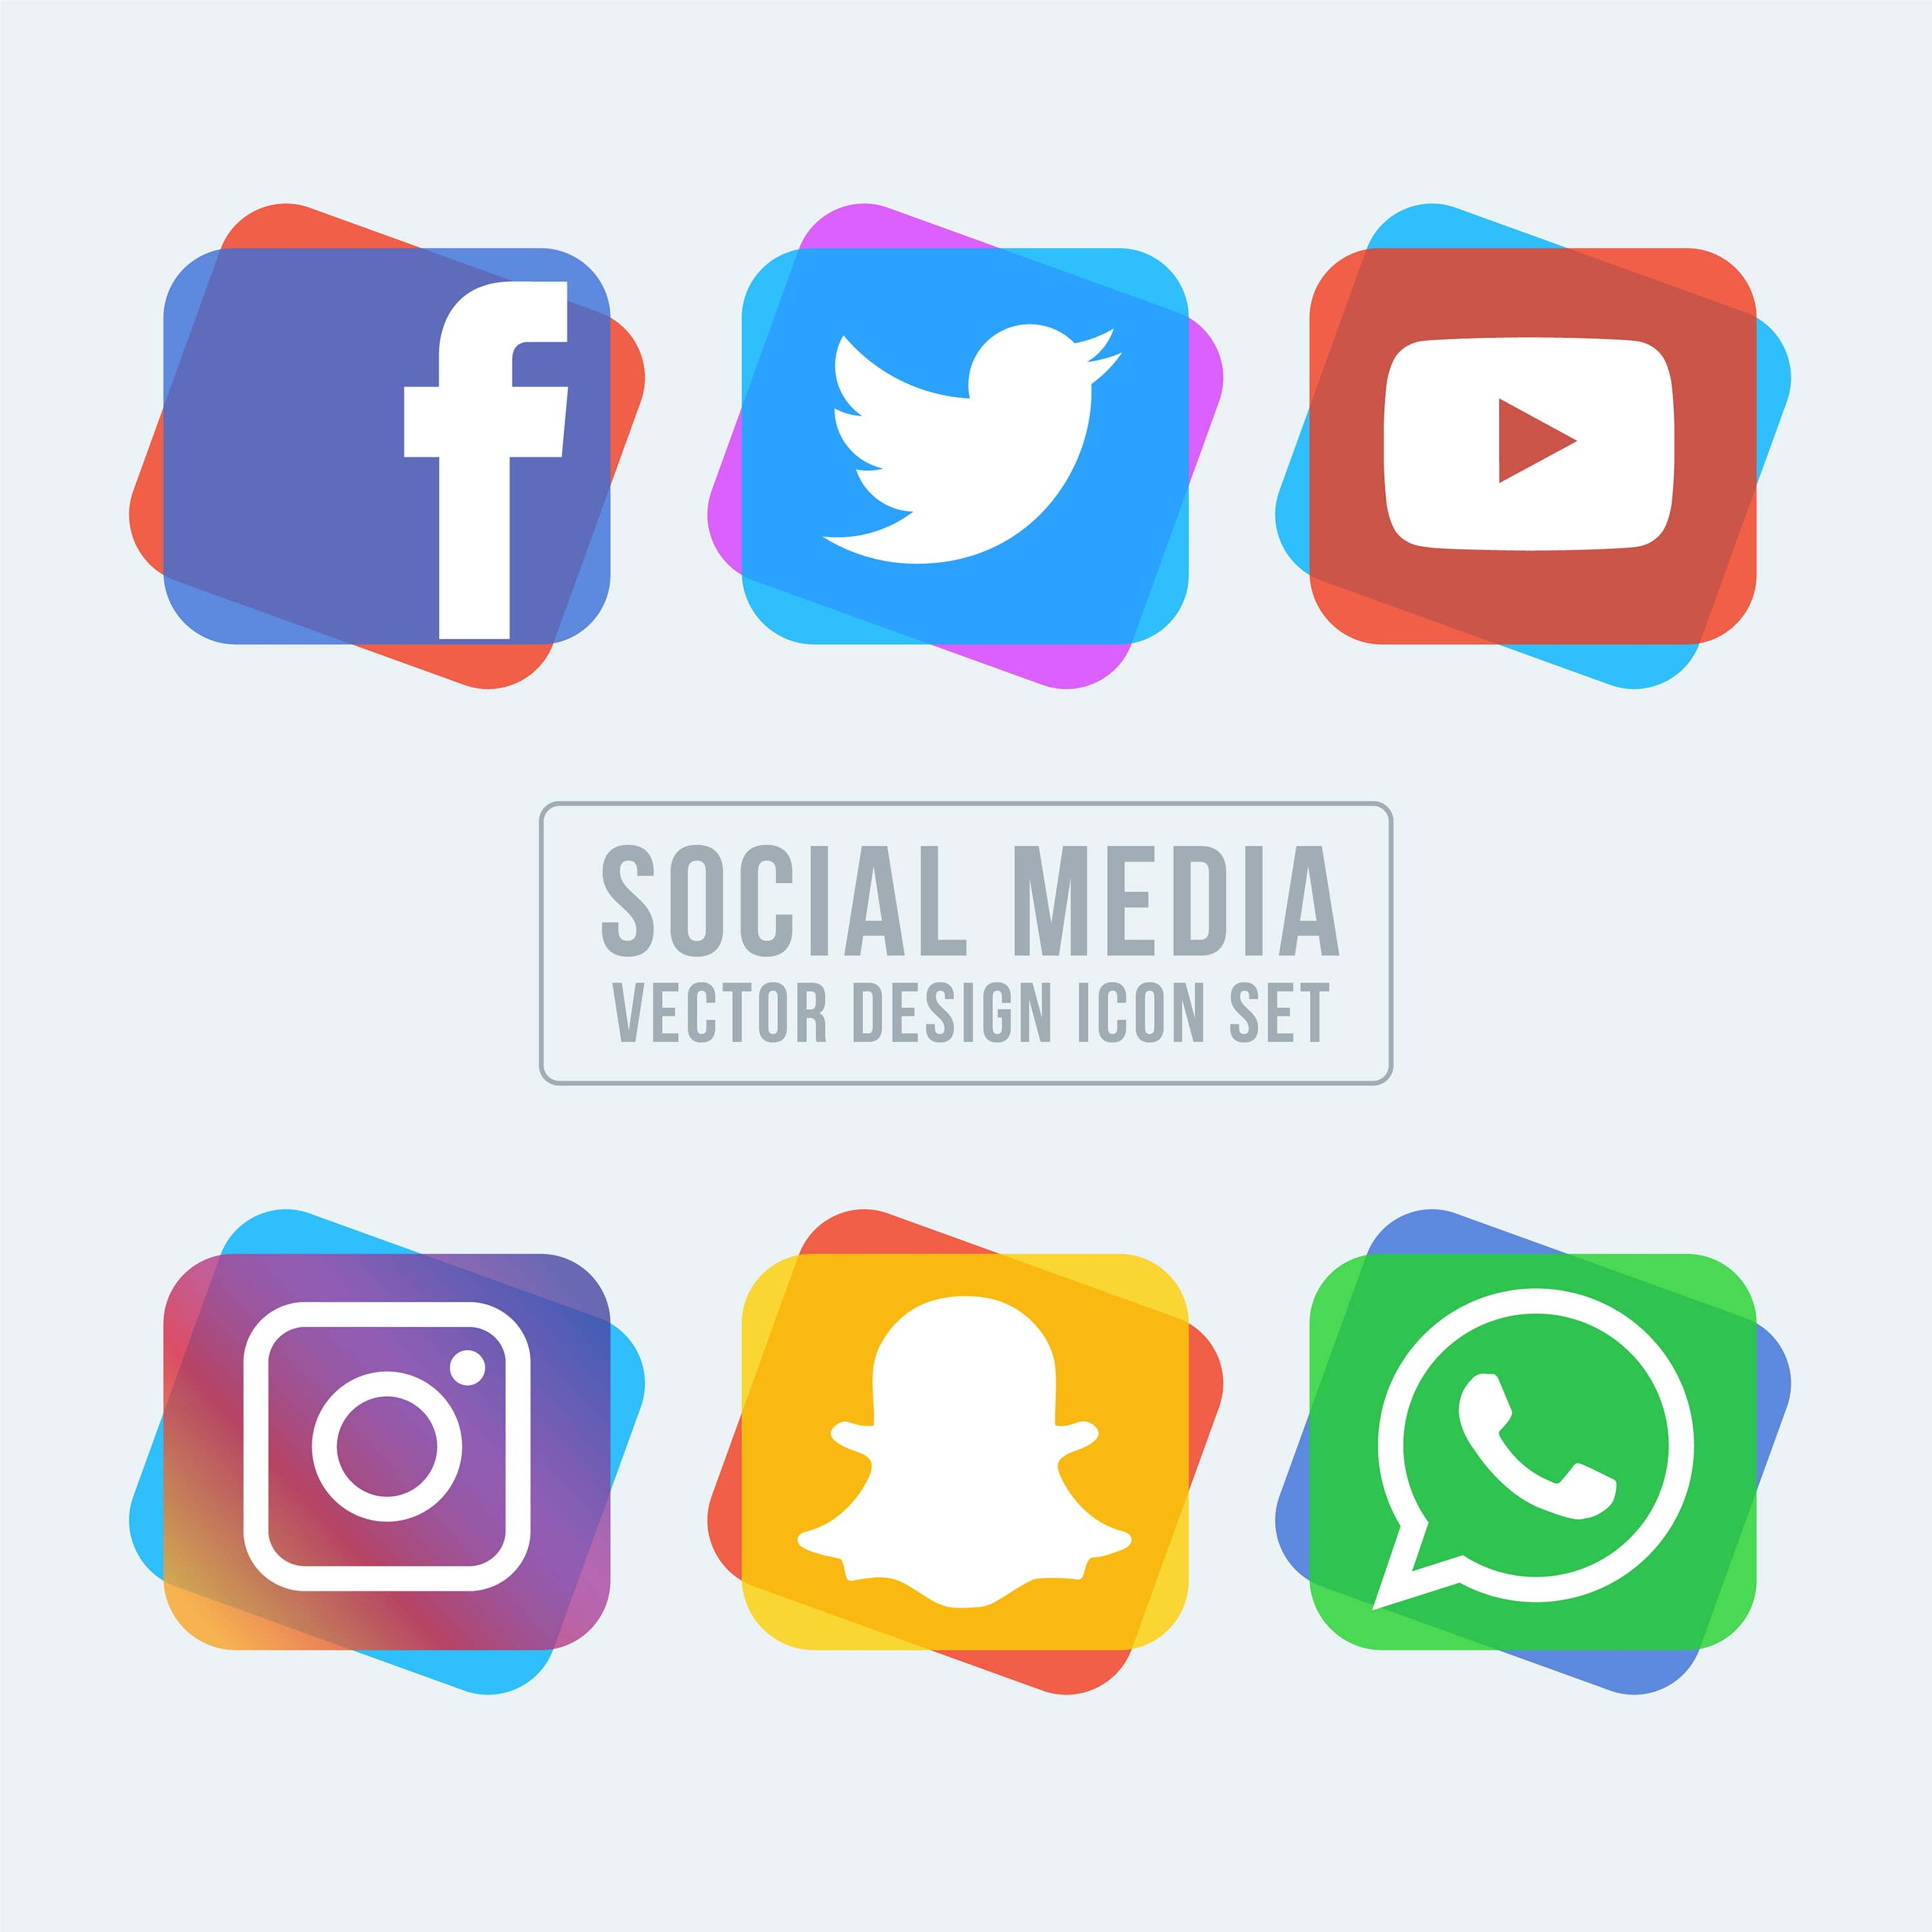 vector-collection-of-social-media-icons.jpg